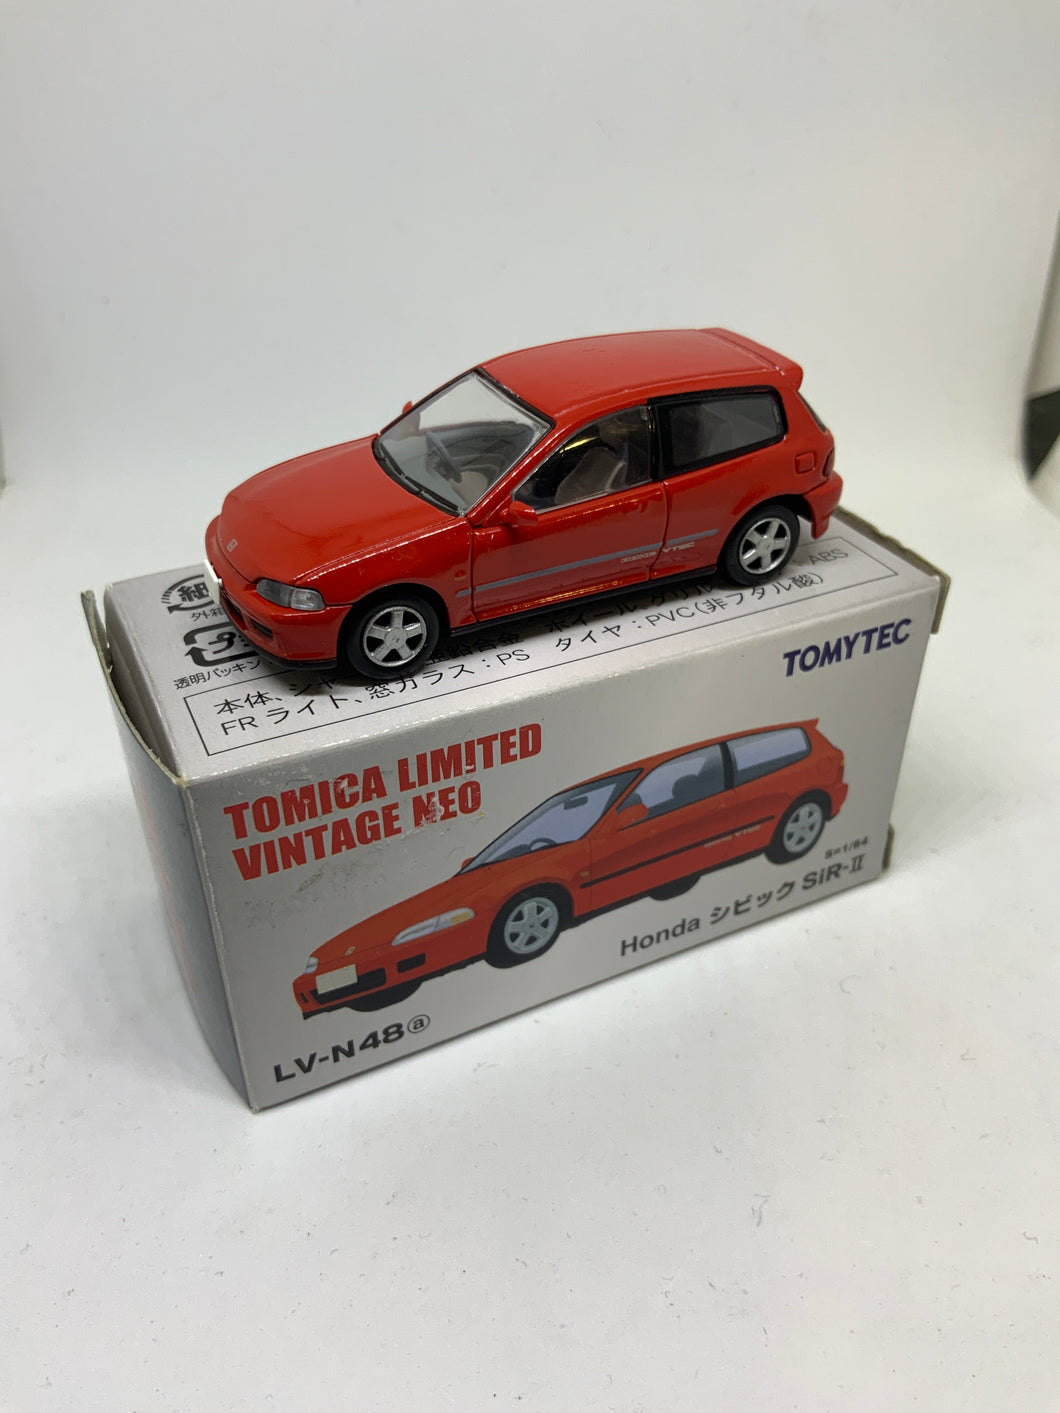 TOMICA Limited Vintage Neo TOMYTEC HONDA CIVIC Eg6 SiR-II Red